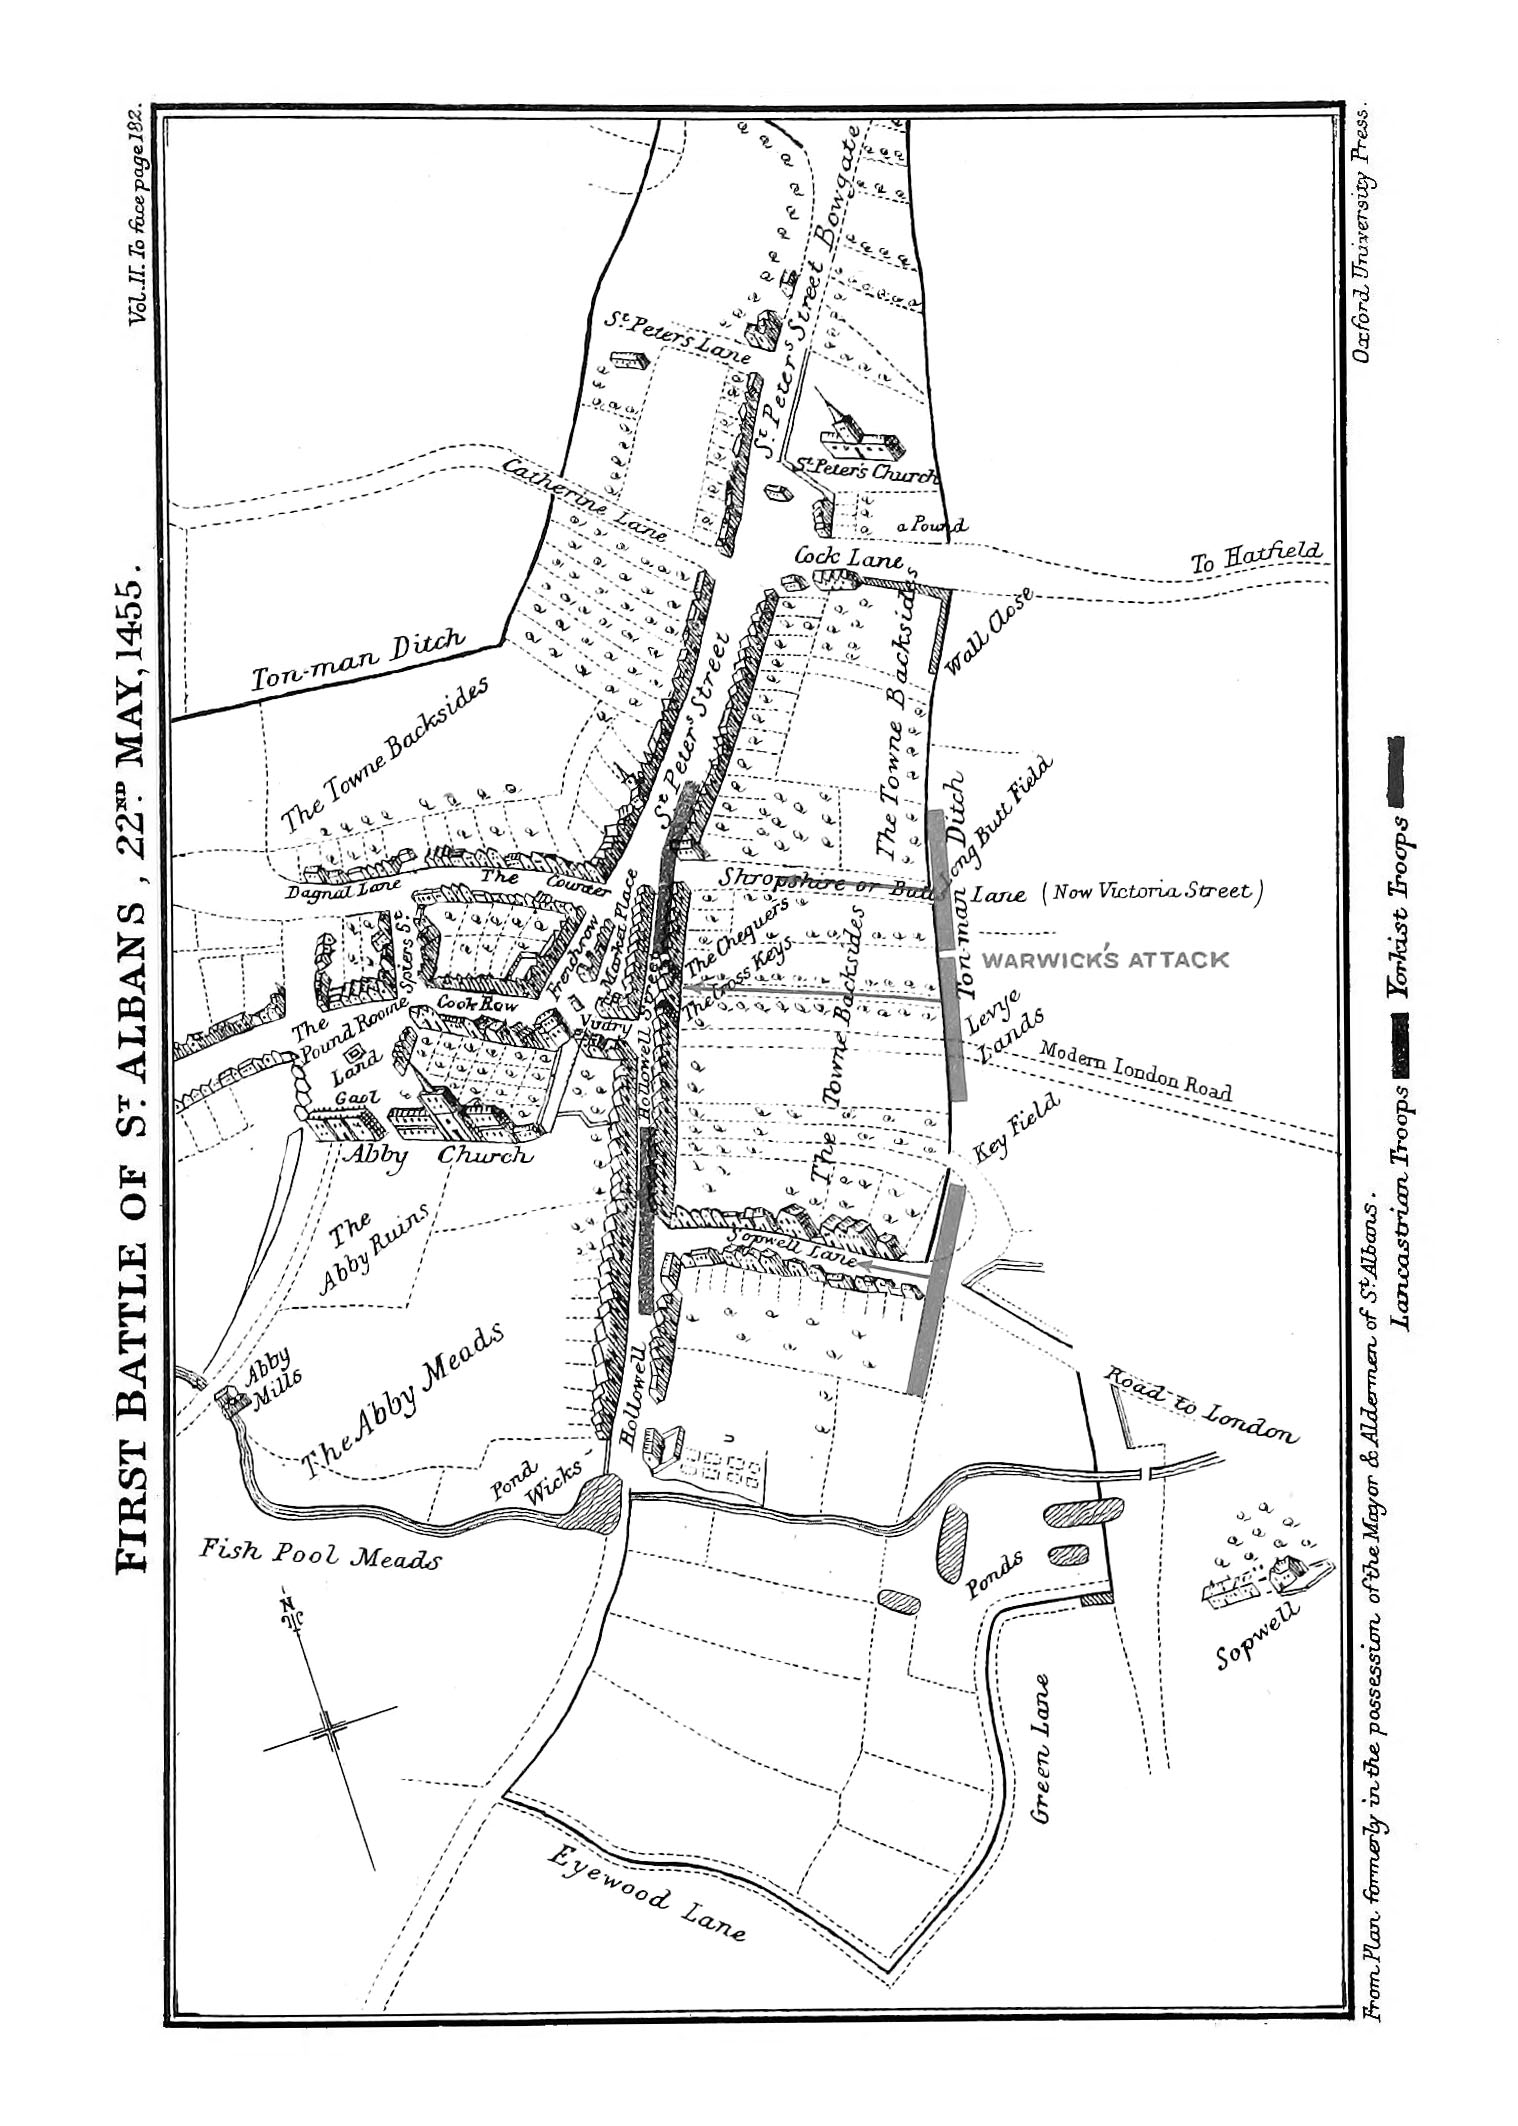 Battle Map of St. Albans